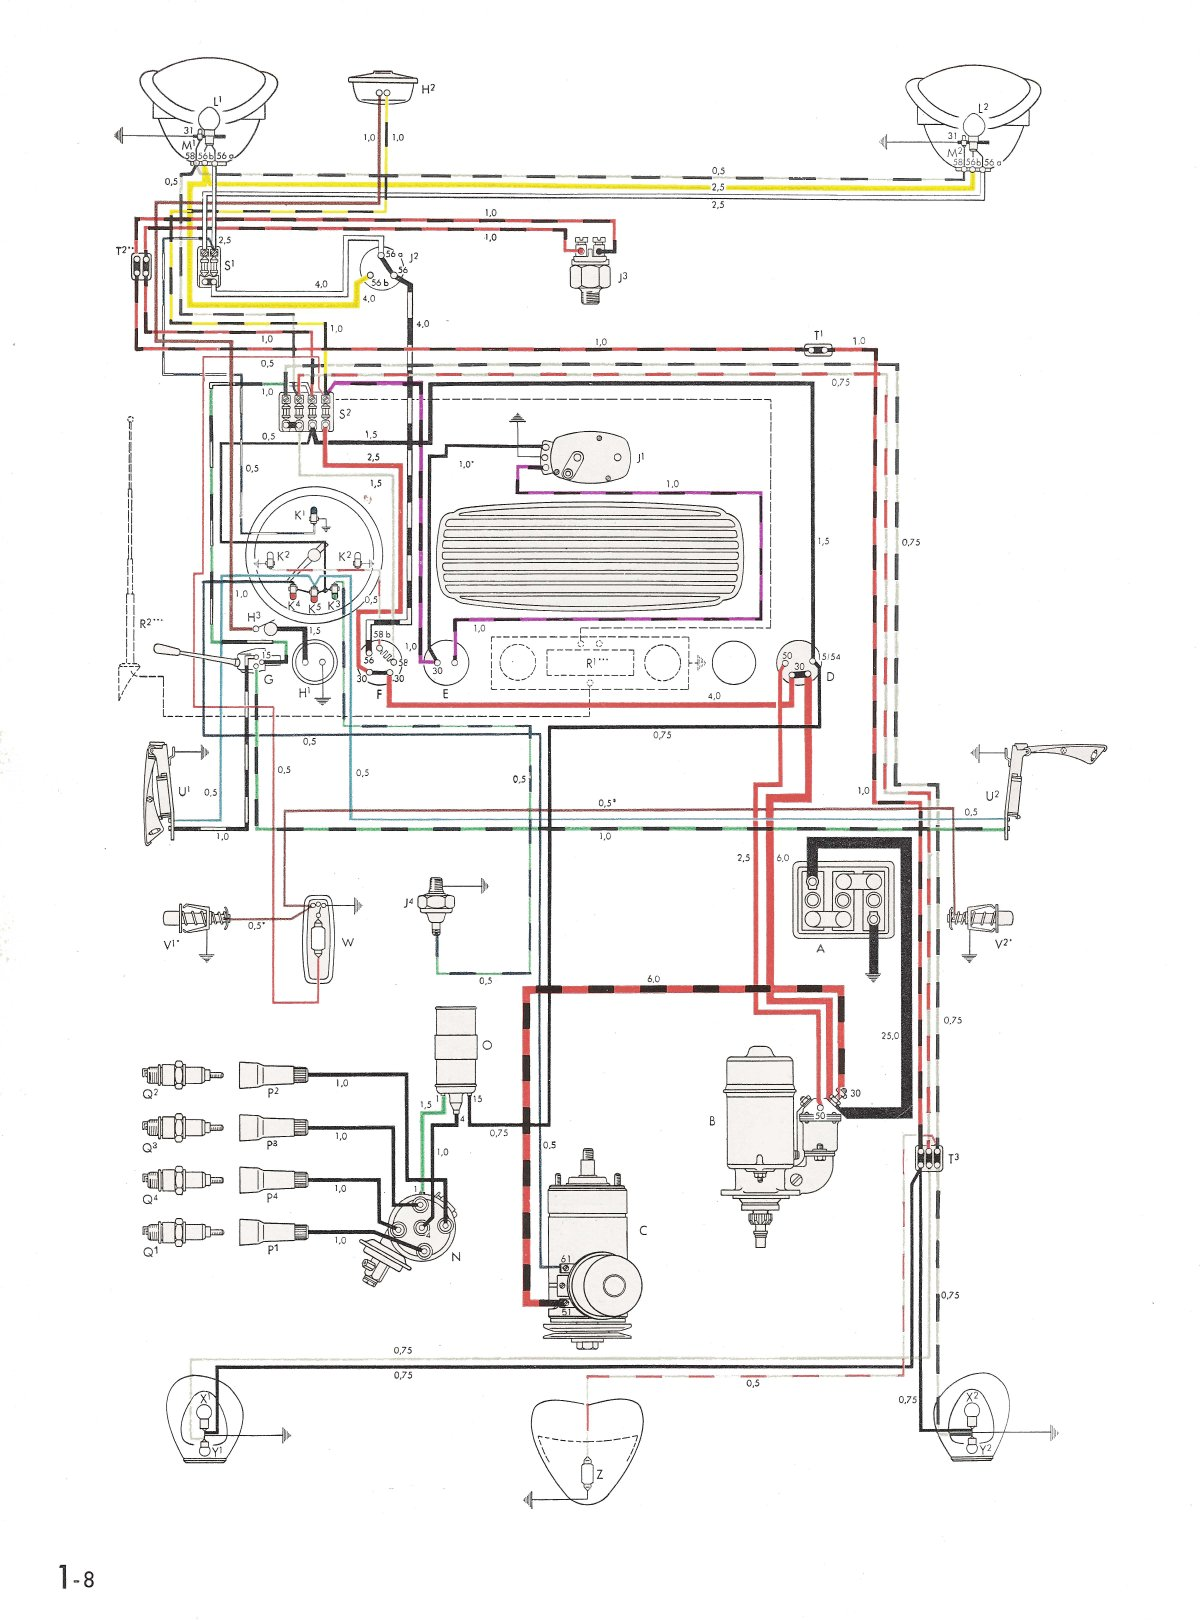 bug54 thesamba com type 1 wiring diagrams